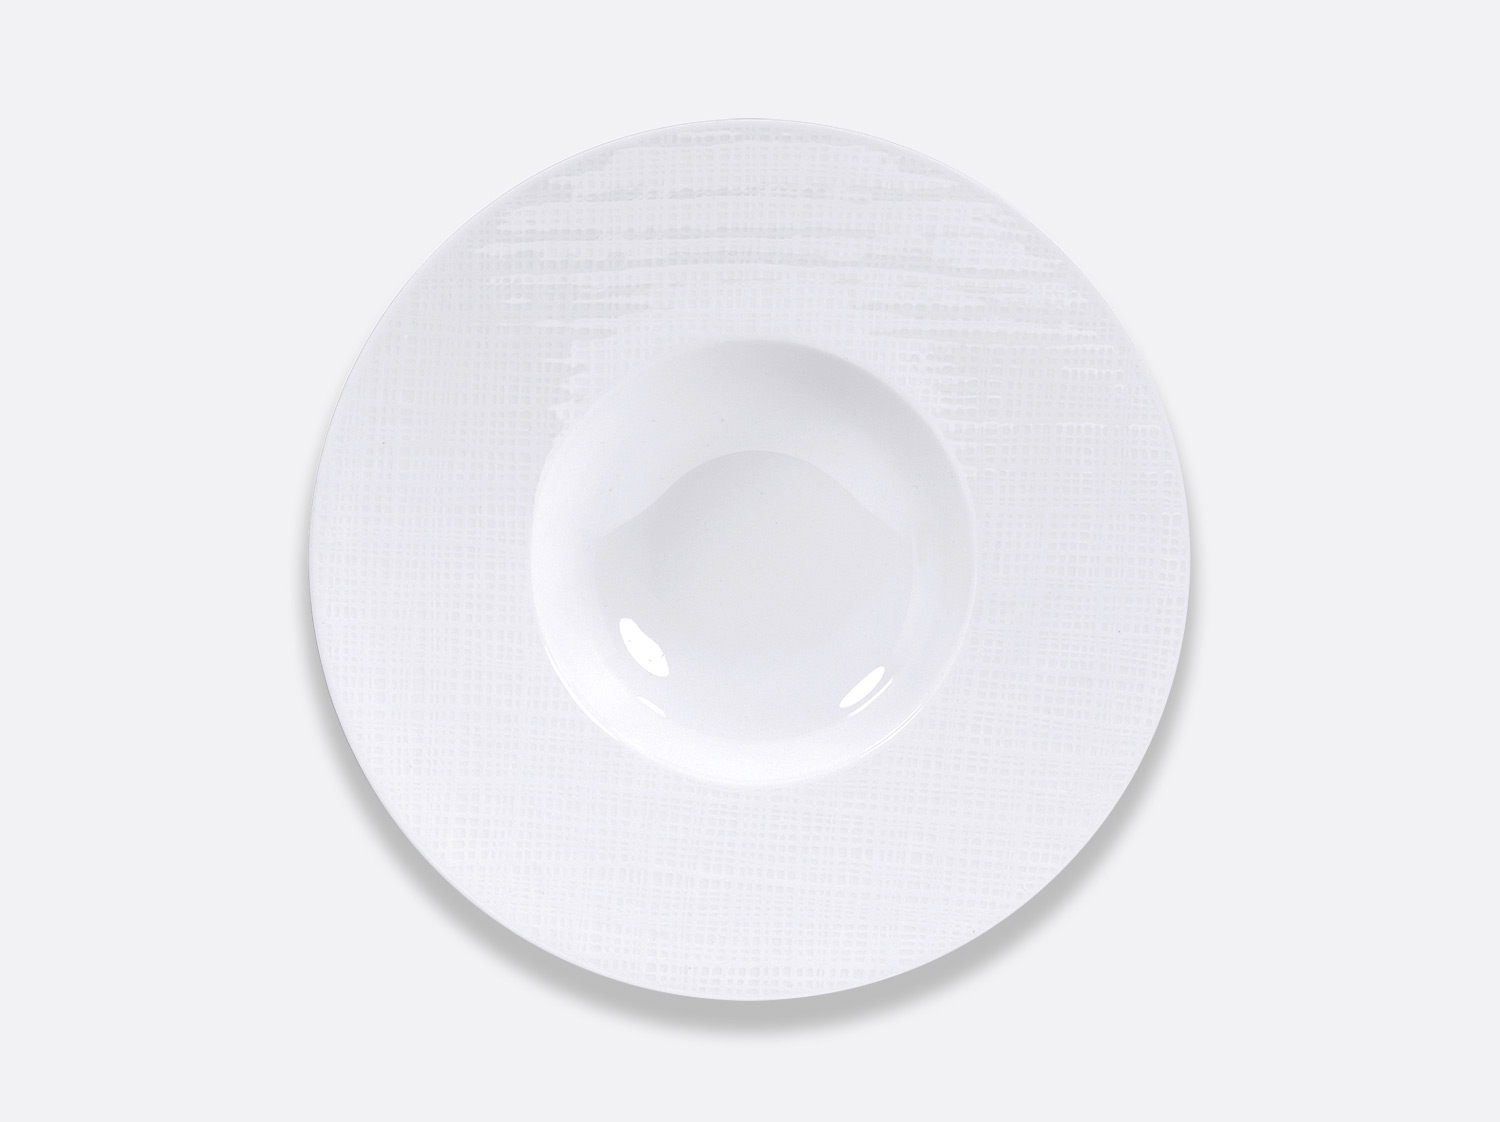 Assiette creuse à aile large 27cm en porcelaine de la collection ORGANZA BLANC Bernardaud